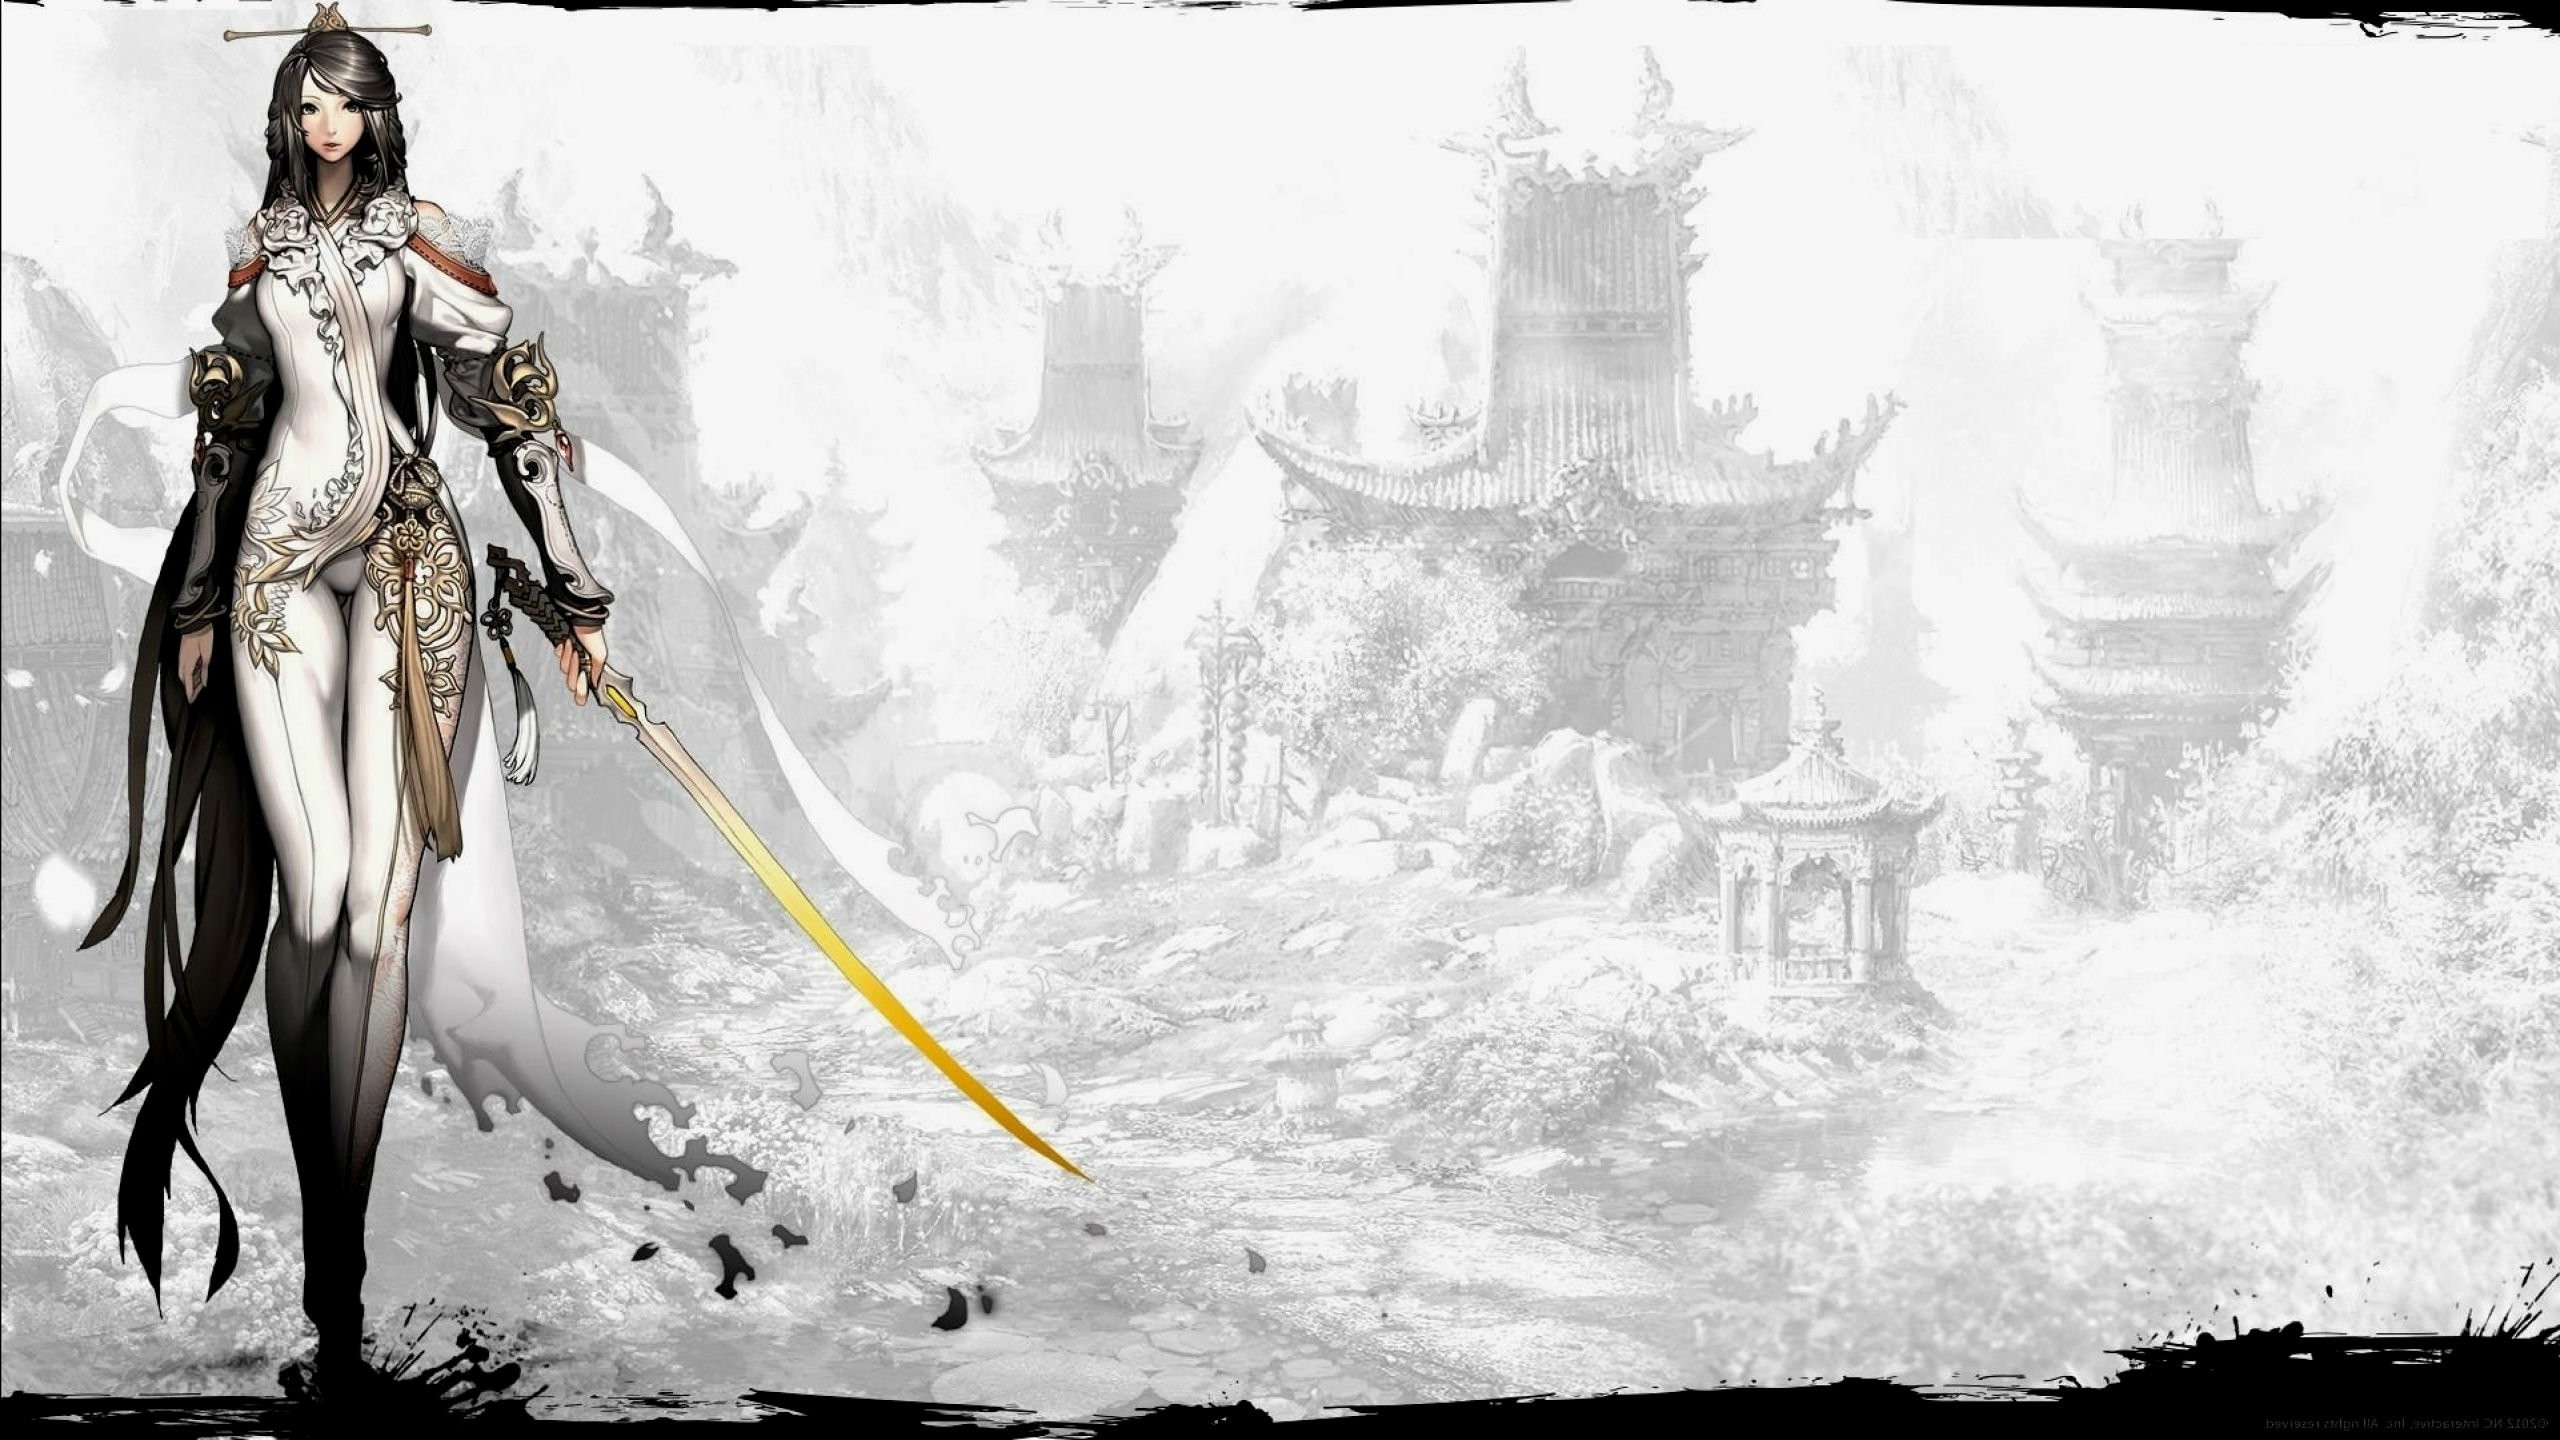 BLADE And SOUL asian martial arts action fighting 1blades online mmo rpg  Beulleideu aen anime fantasy perfect wallpaper | | 679551 |  WallpaperUP